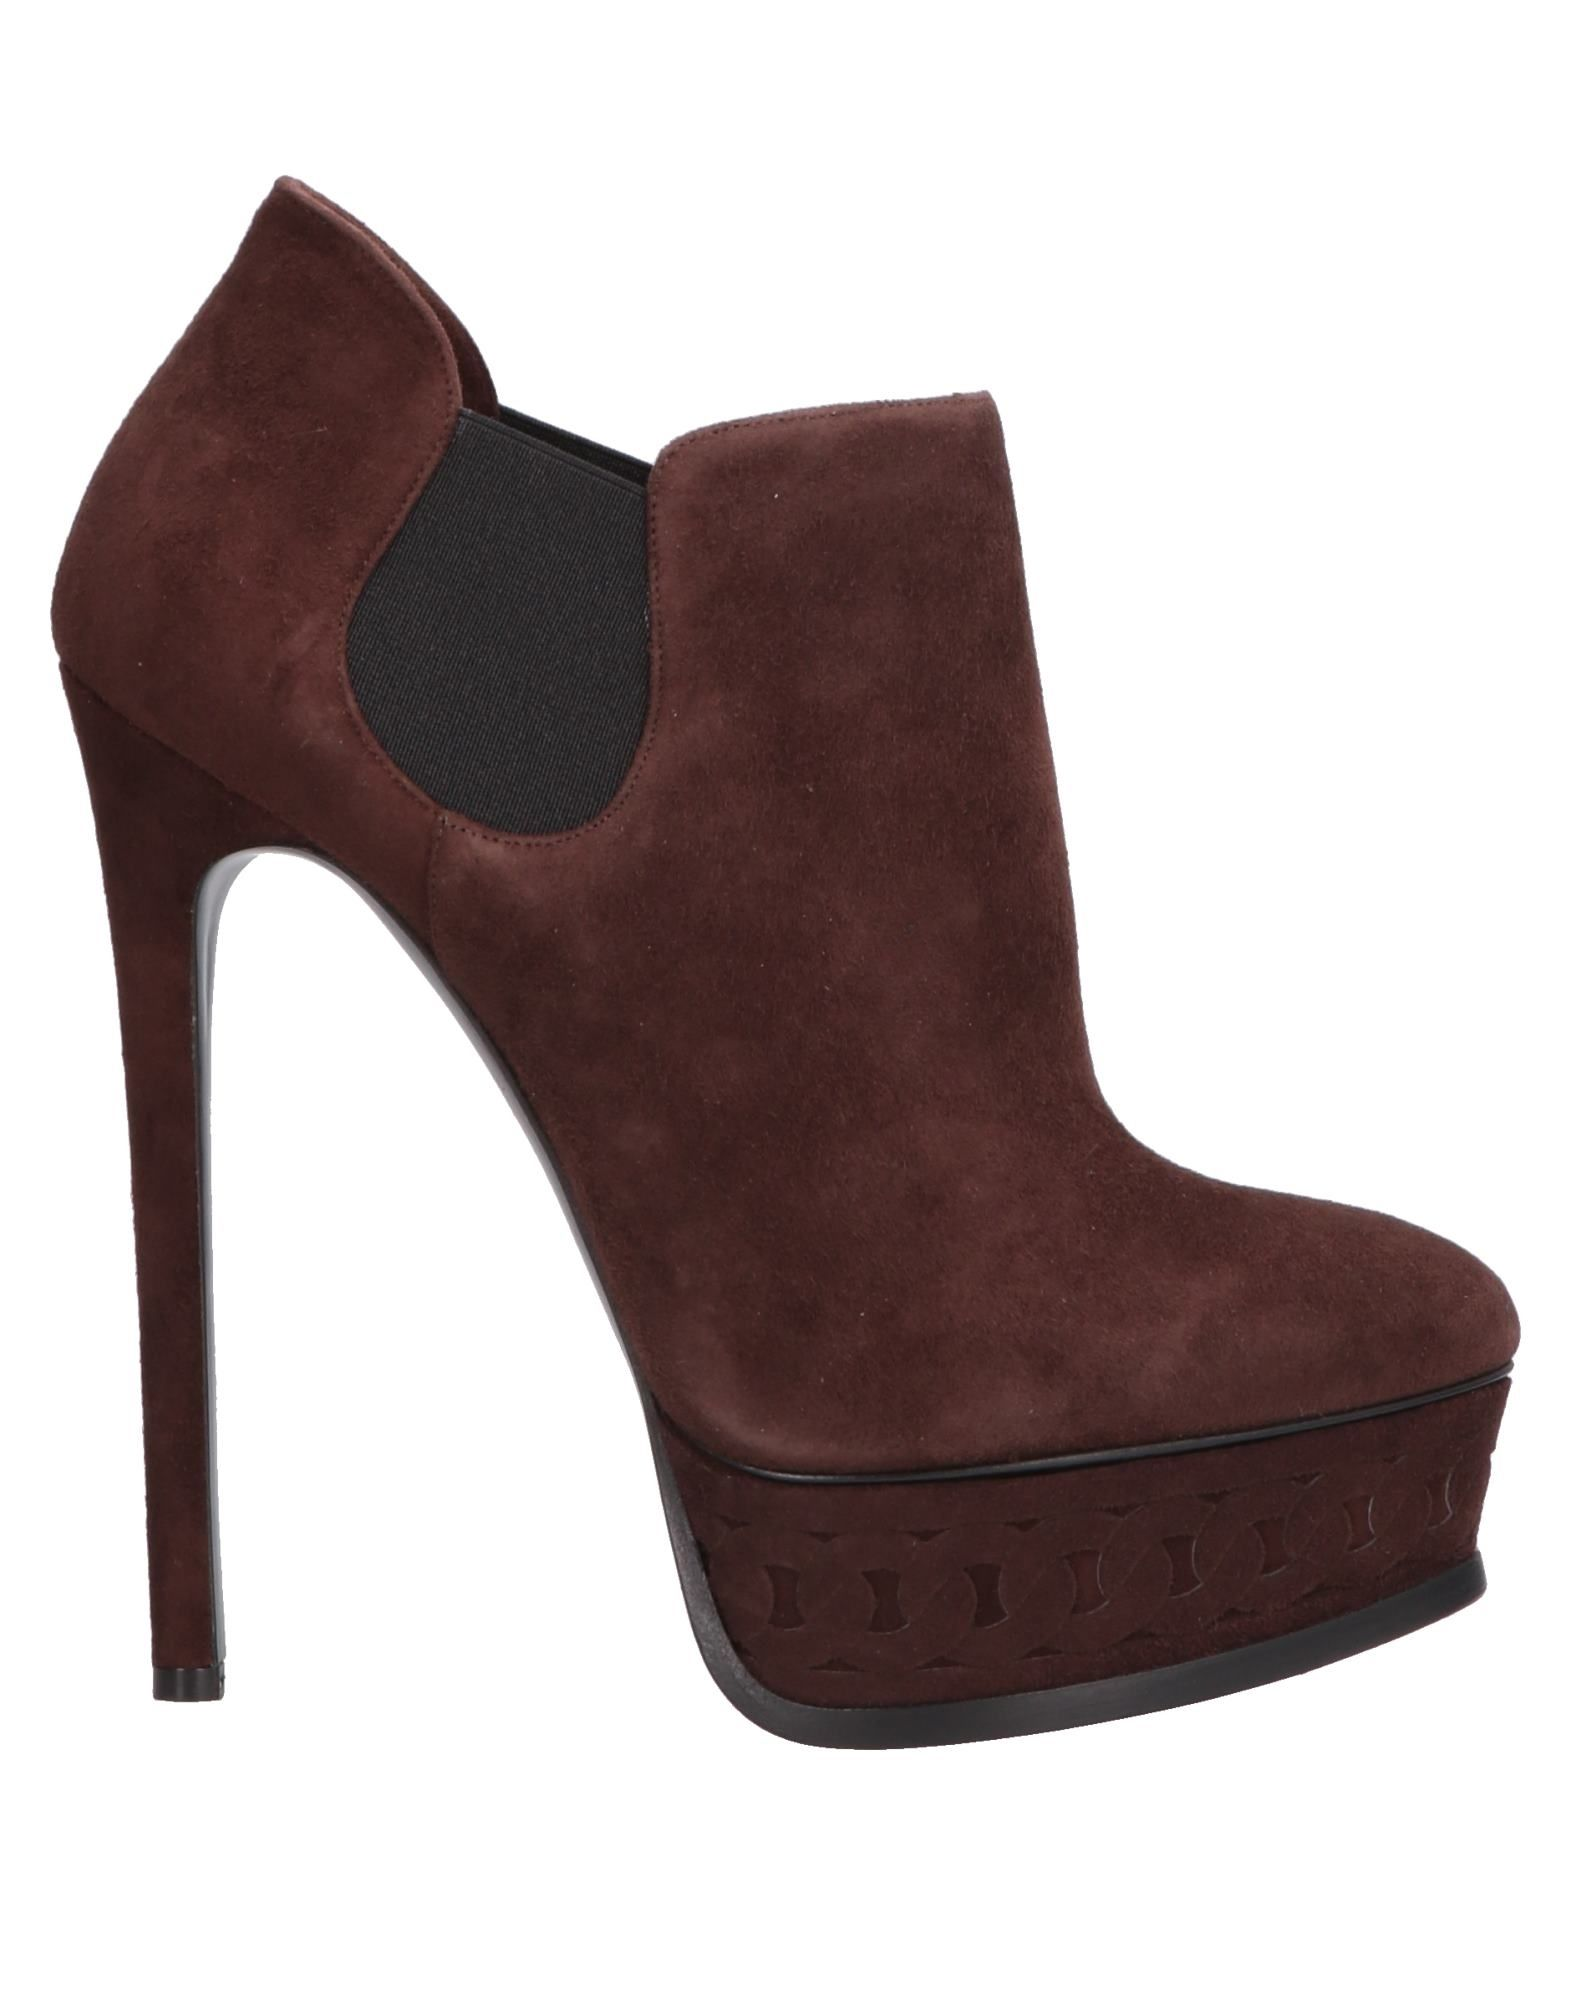 Casadei Ankle Ankle Casadei Boot - Women Casadei Ankle Boots online on  Canada - 11562427SU 536509